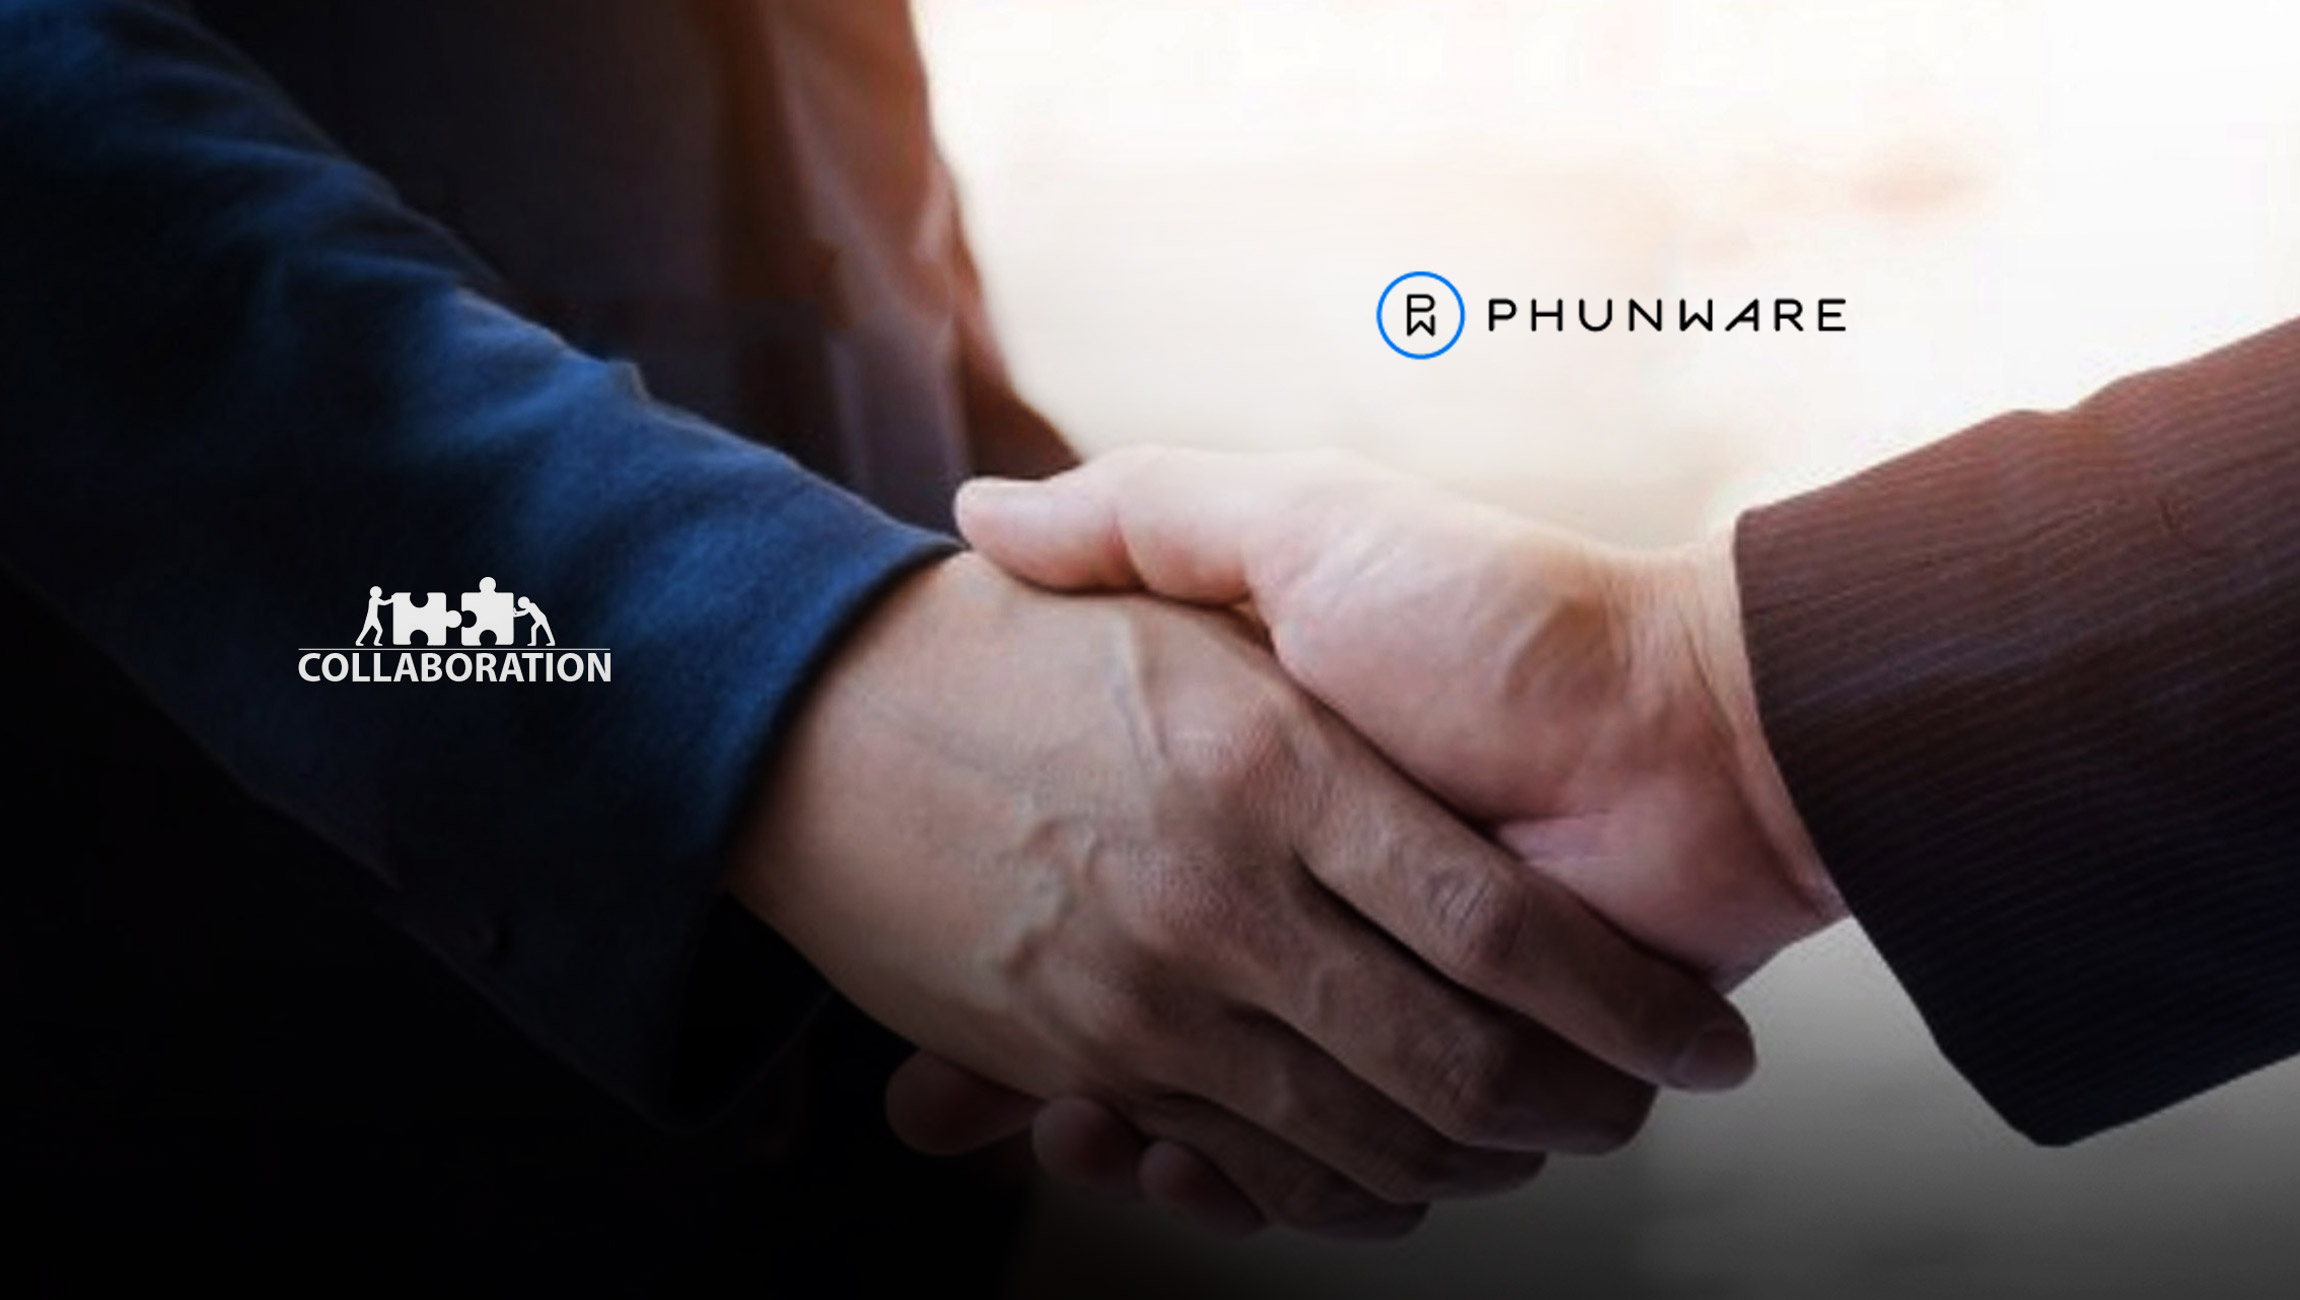 Phunware Announces Joint Venture with AnyPlace MD to Provide an End-to-End, Tech-Enabled Solution to COVID-19